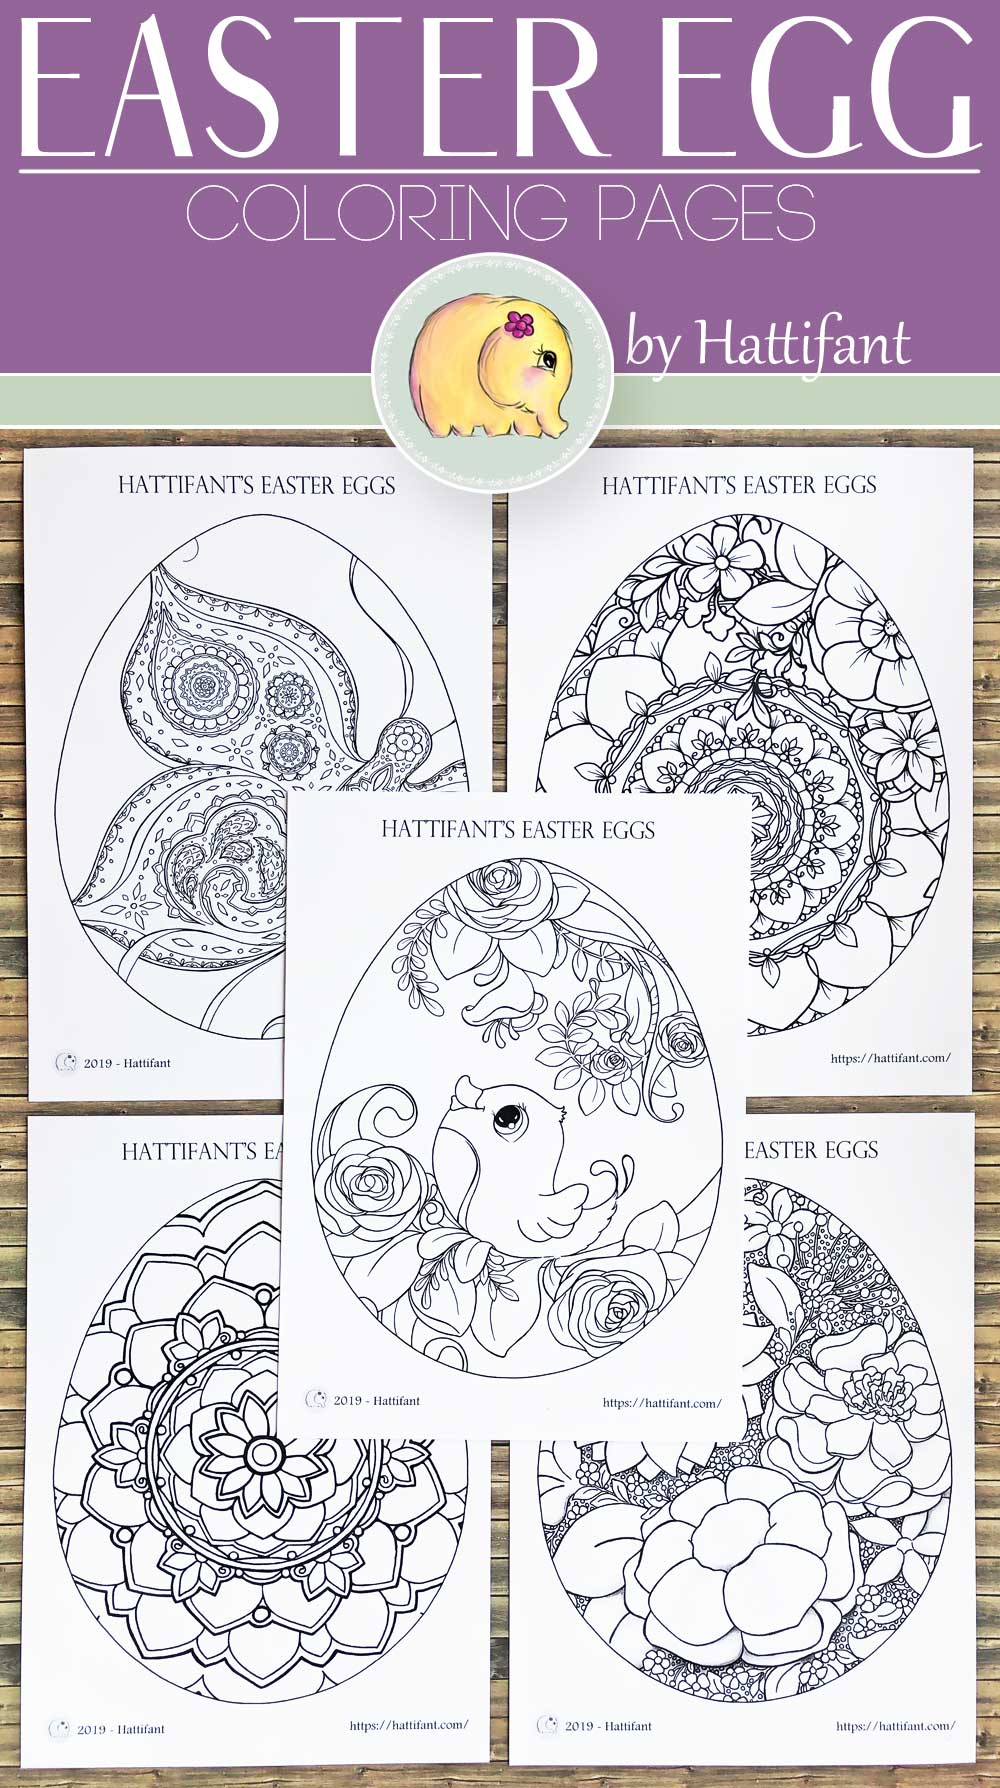 COLORING PAGES | EASTER Eggs - Hattifant